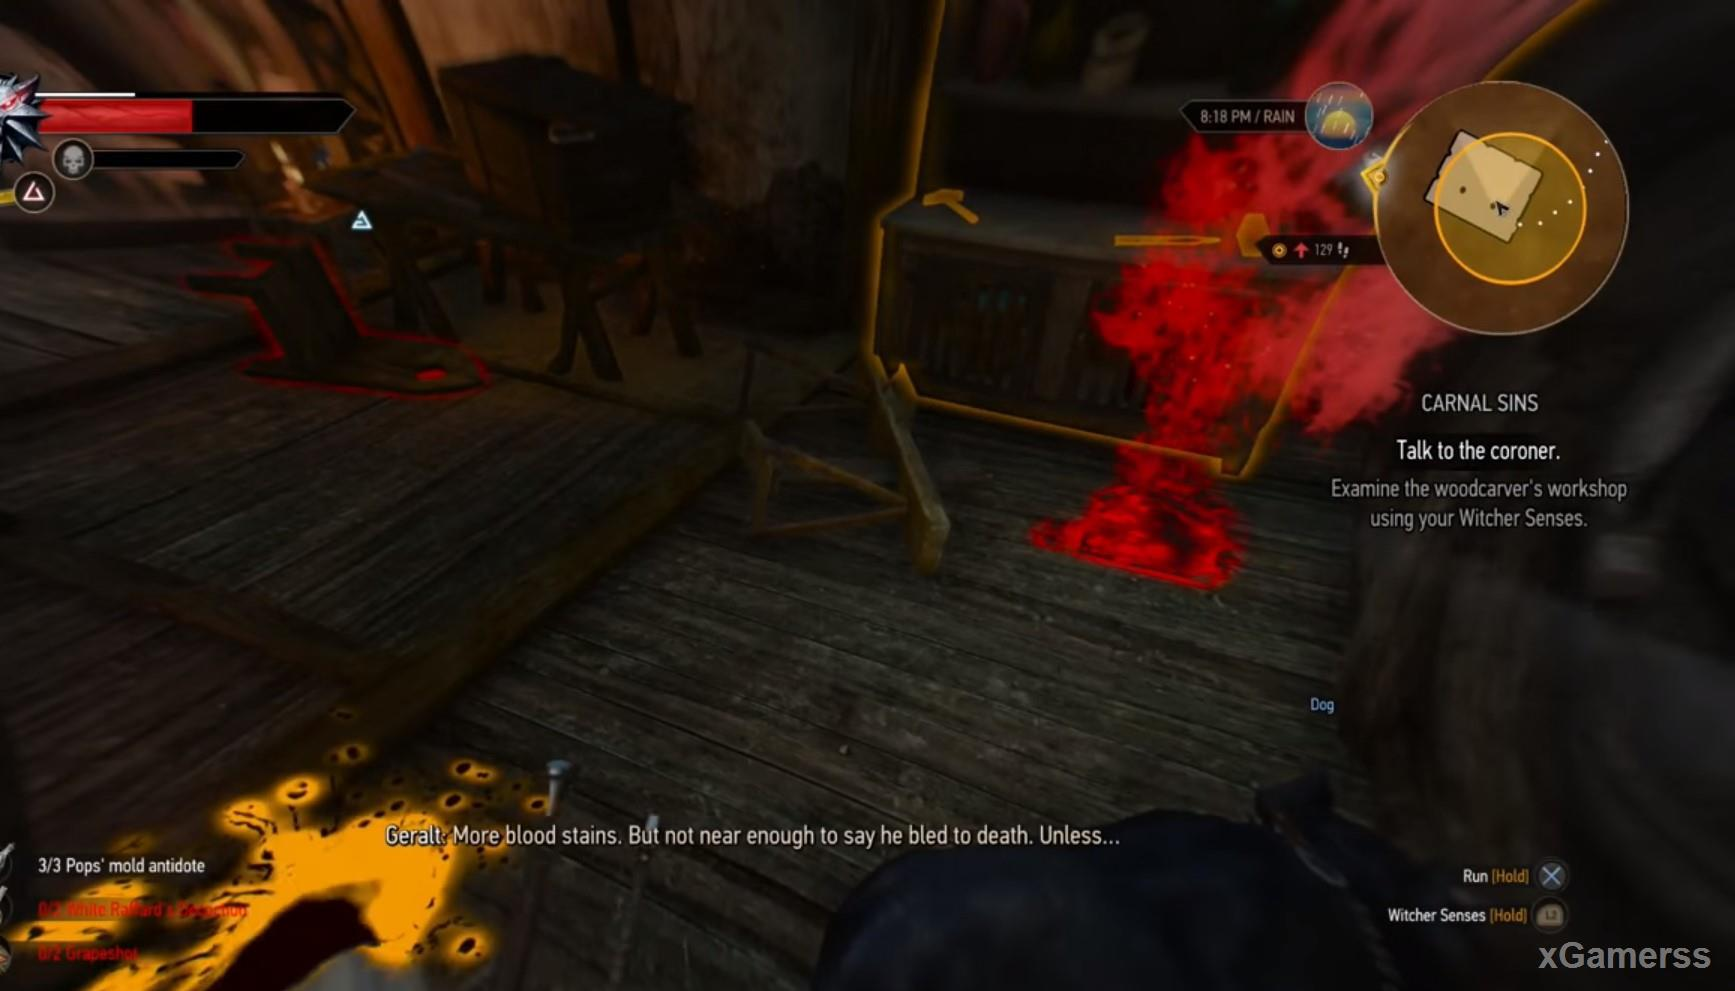 Traces of blood leading Geralt to the workshop